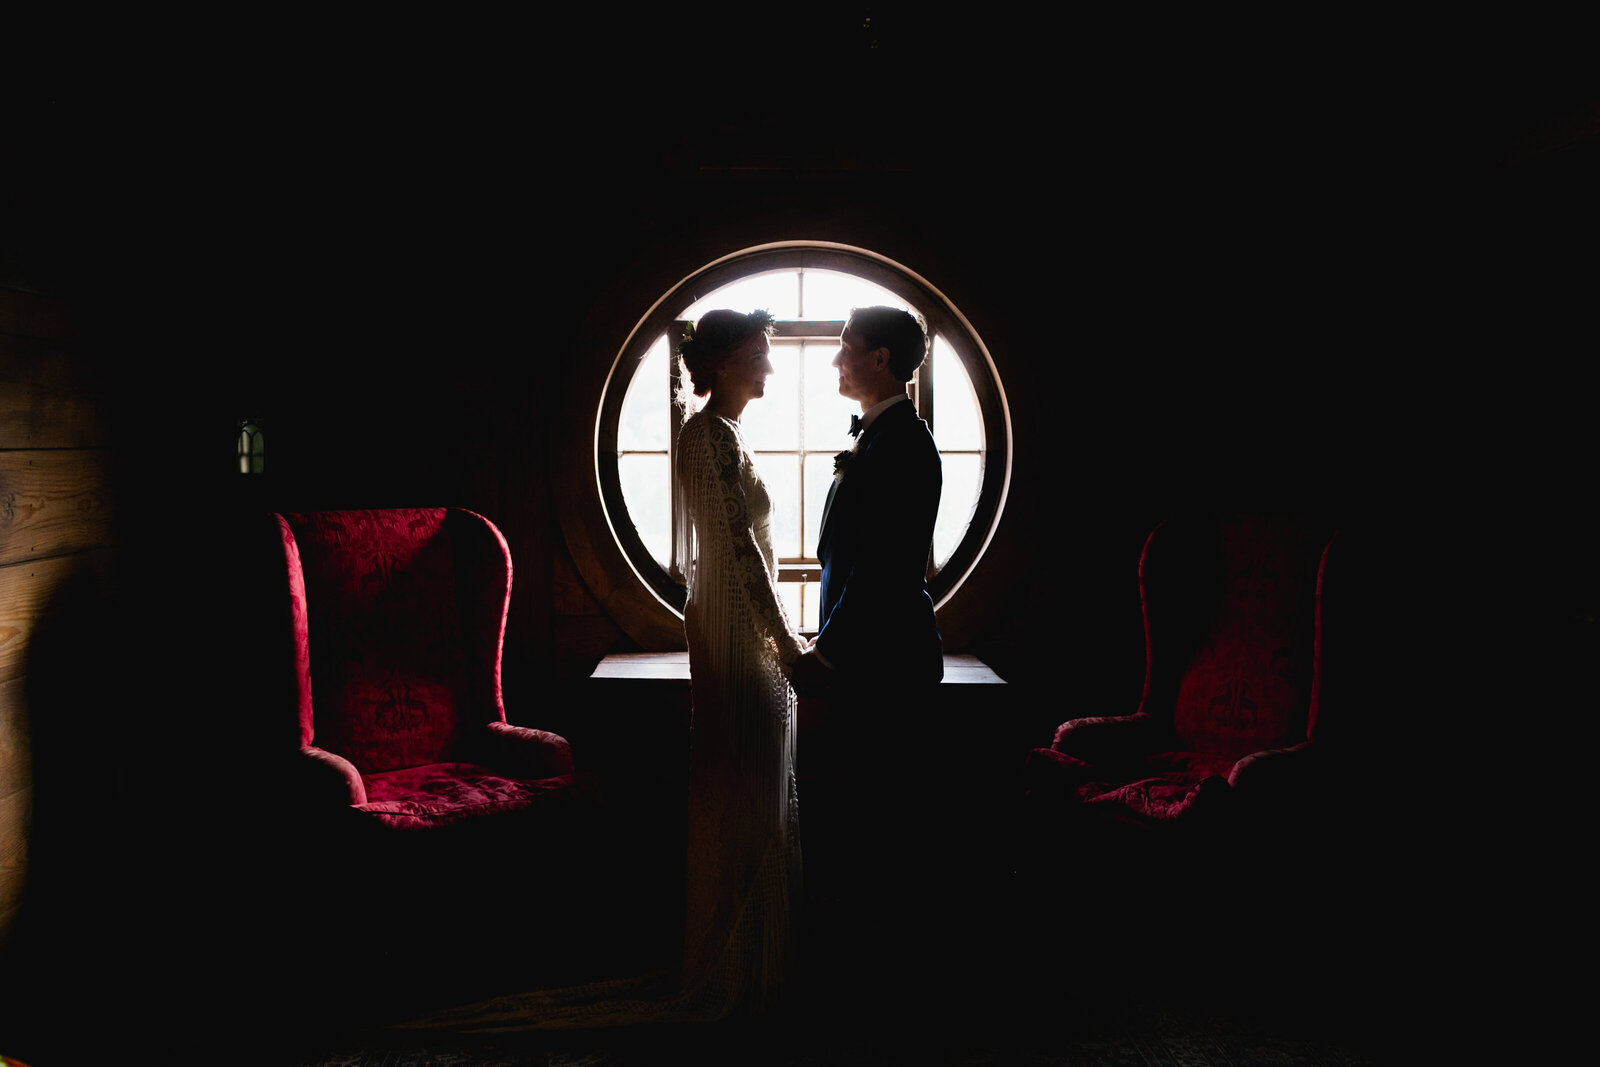 bride and groom silhouetted in window